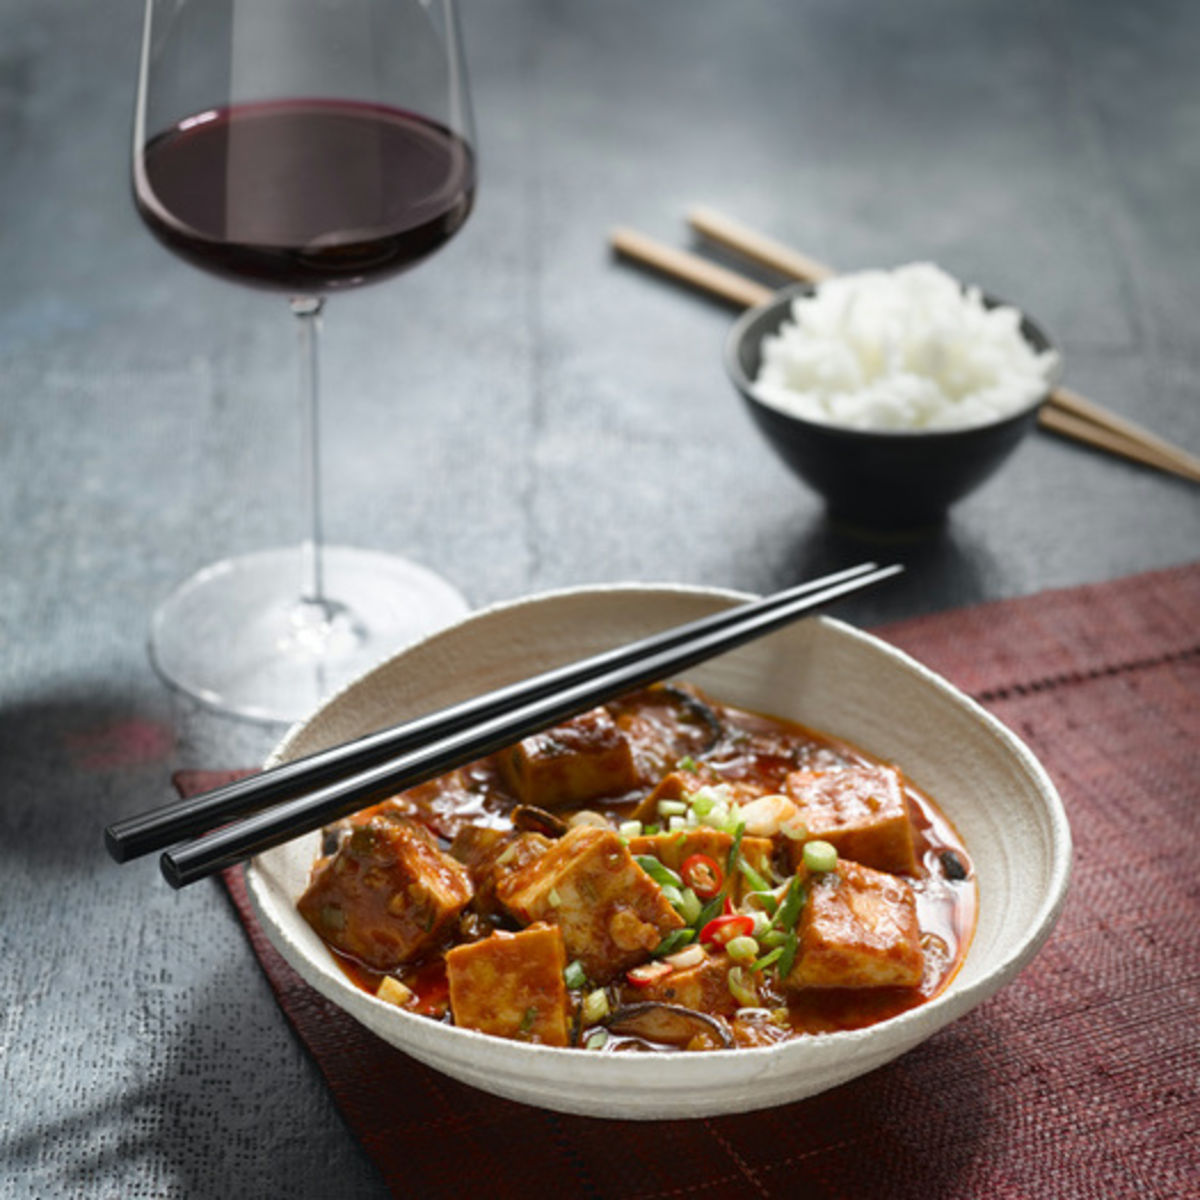 The picture shows the vegan dish Mapo Tofu and a glass of red wine.